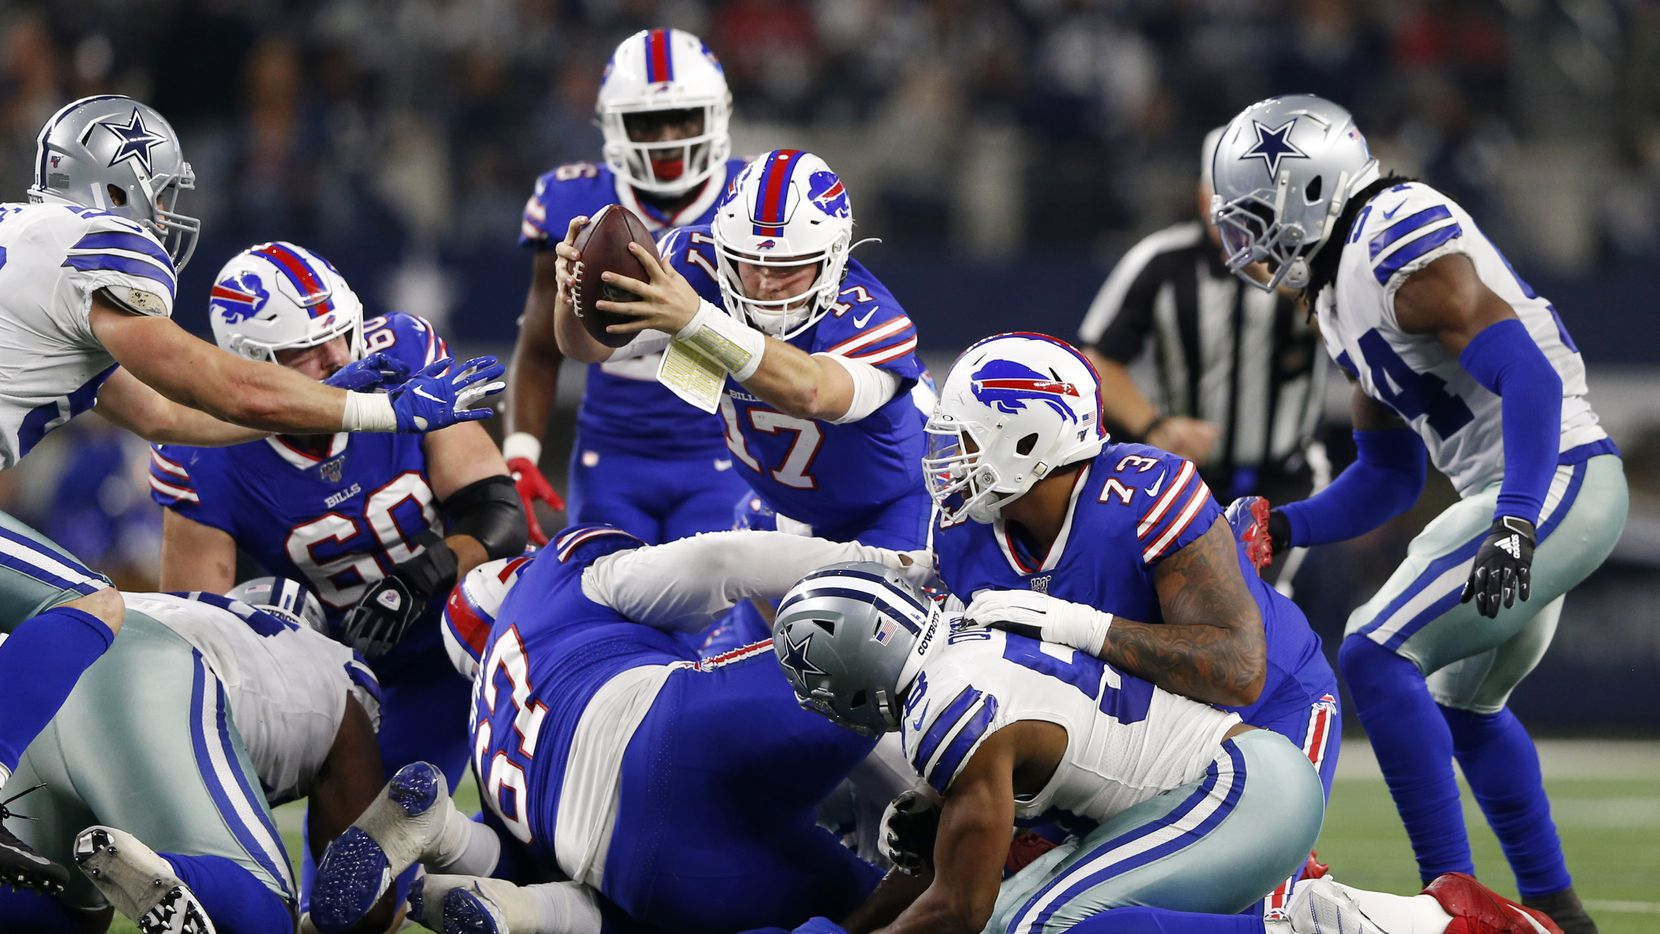 Buffalo Bills quarterback Josh Allen (17) dives for a first down in a game against the Dallas Cowboys during the first half of play at AT&T Stadium in Arlington, Texas on Thursday, November 28, 2019. (Vernon Bryant/The Dallas Morning News)